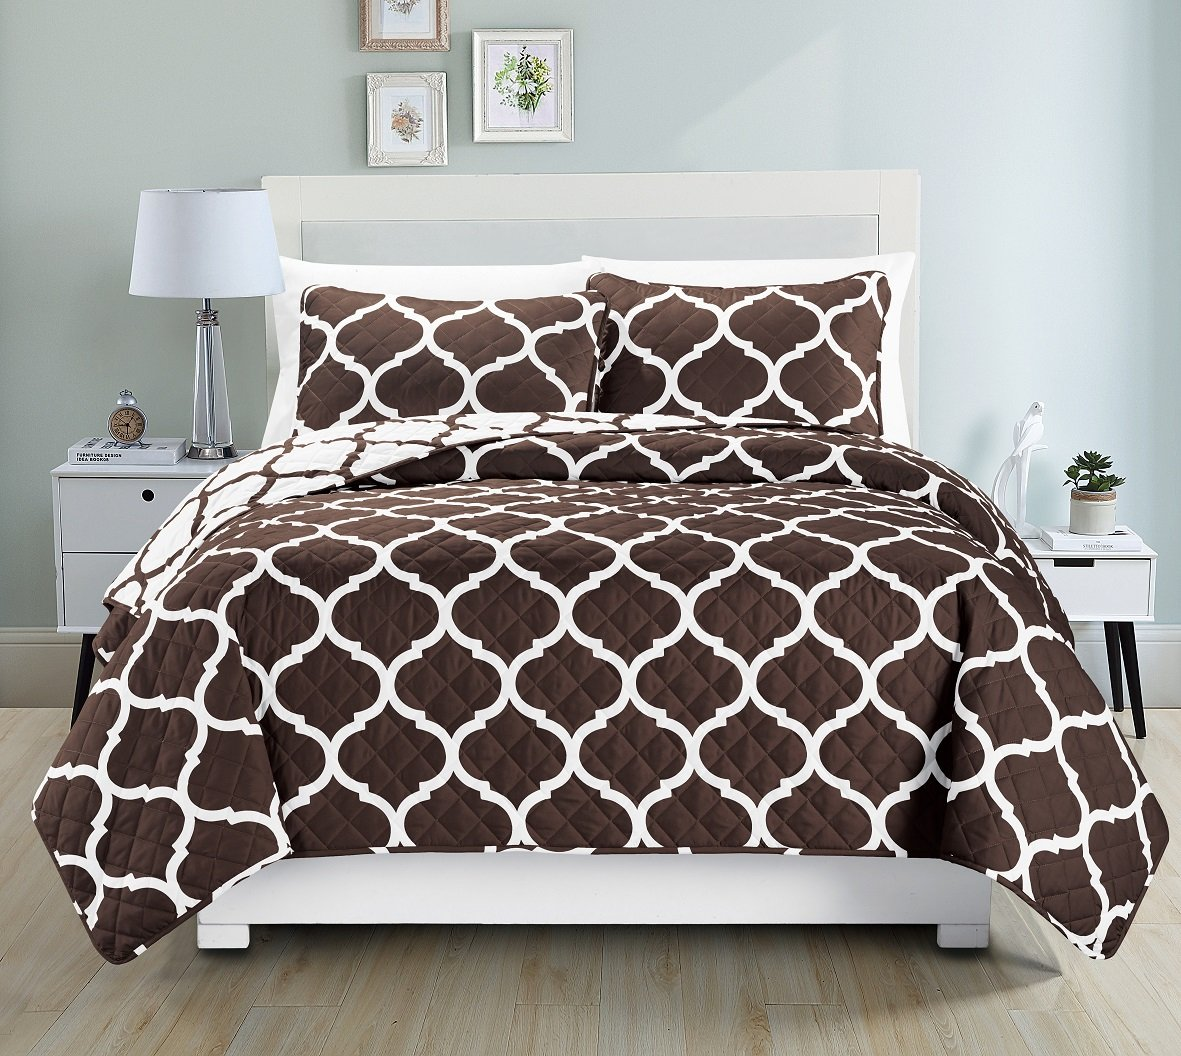 blue and brown bedding sets – ease bedding with style - luxurydiscounts  piece elegant reversible geometric print quilt bedspreadcoverlet bedding set